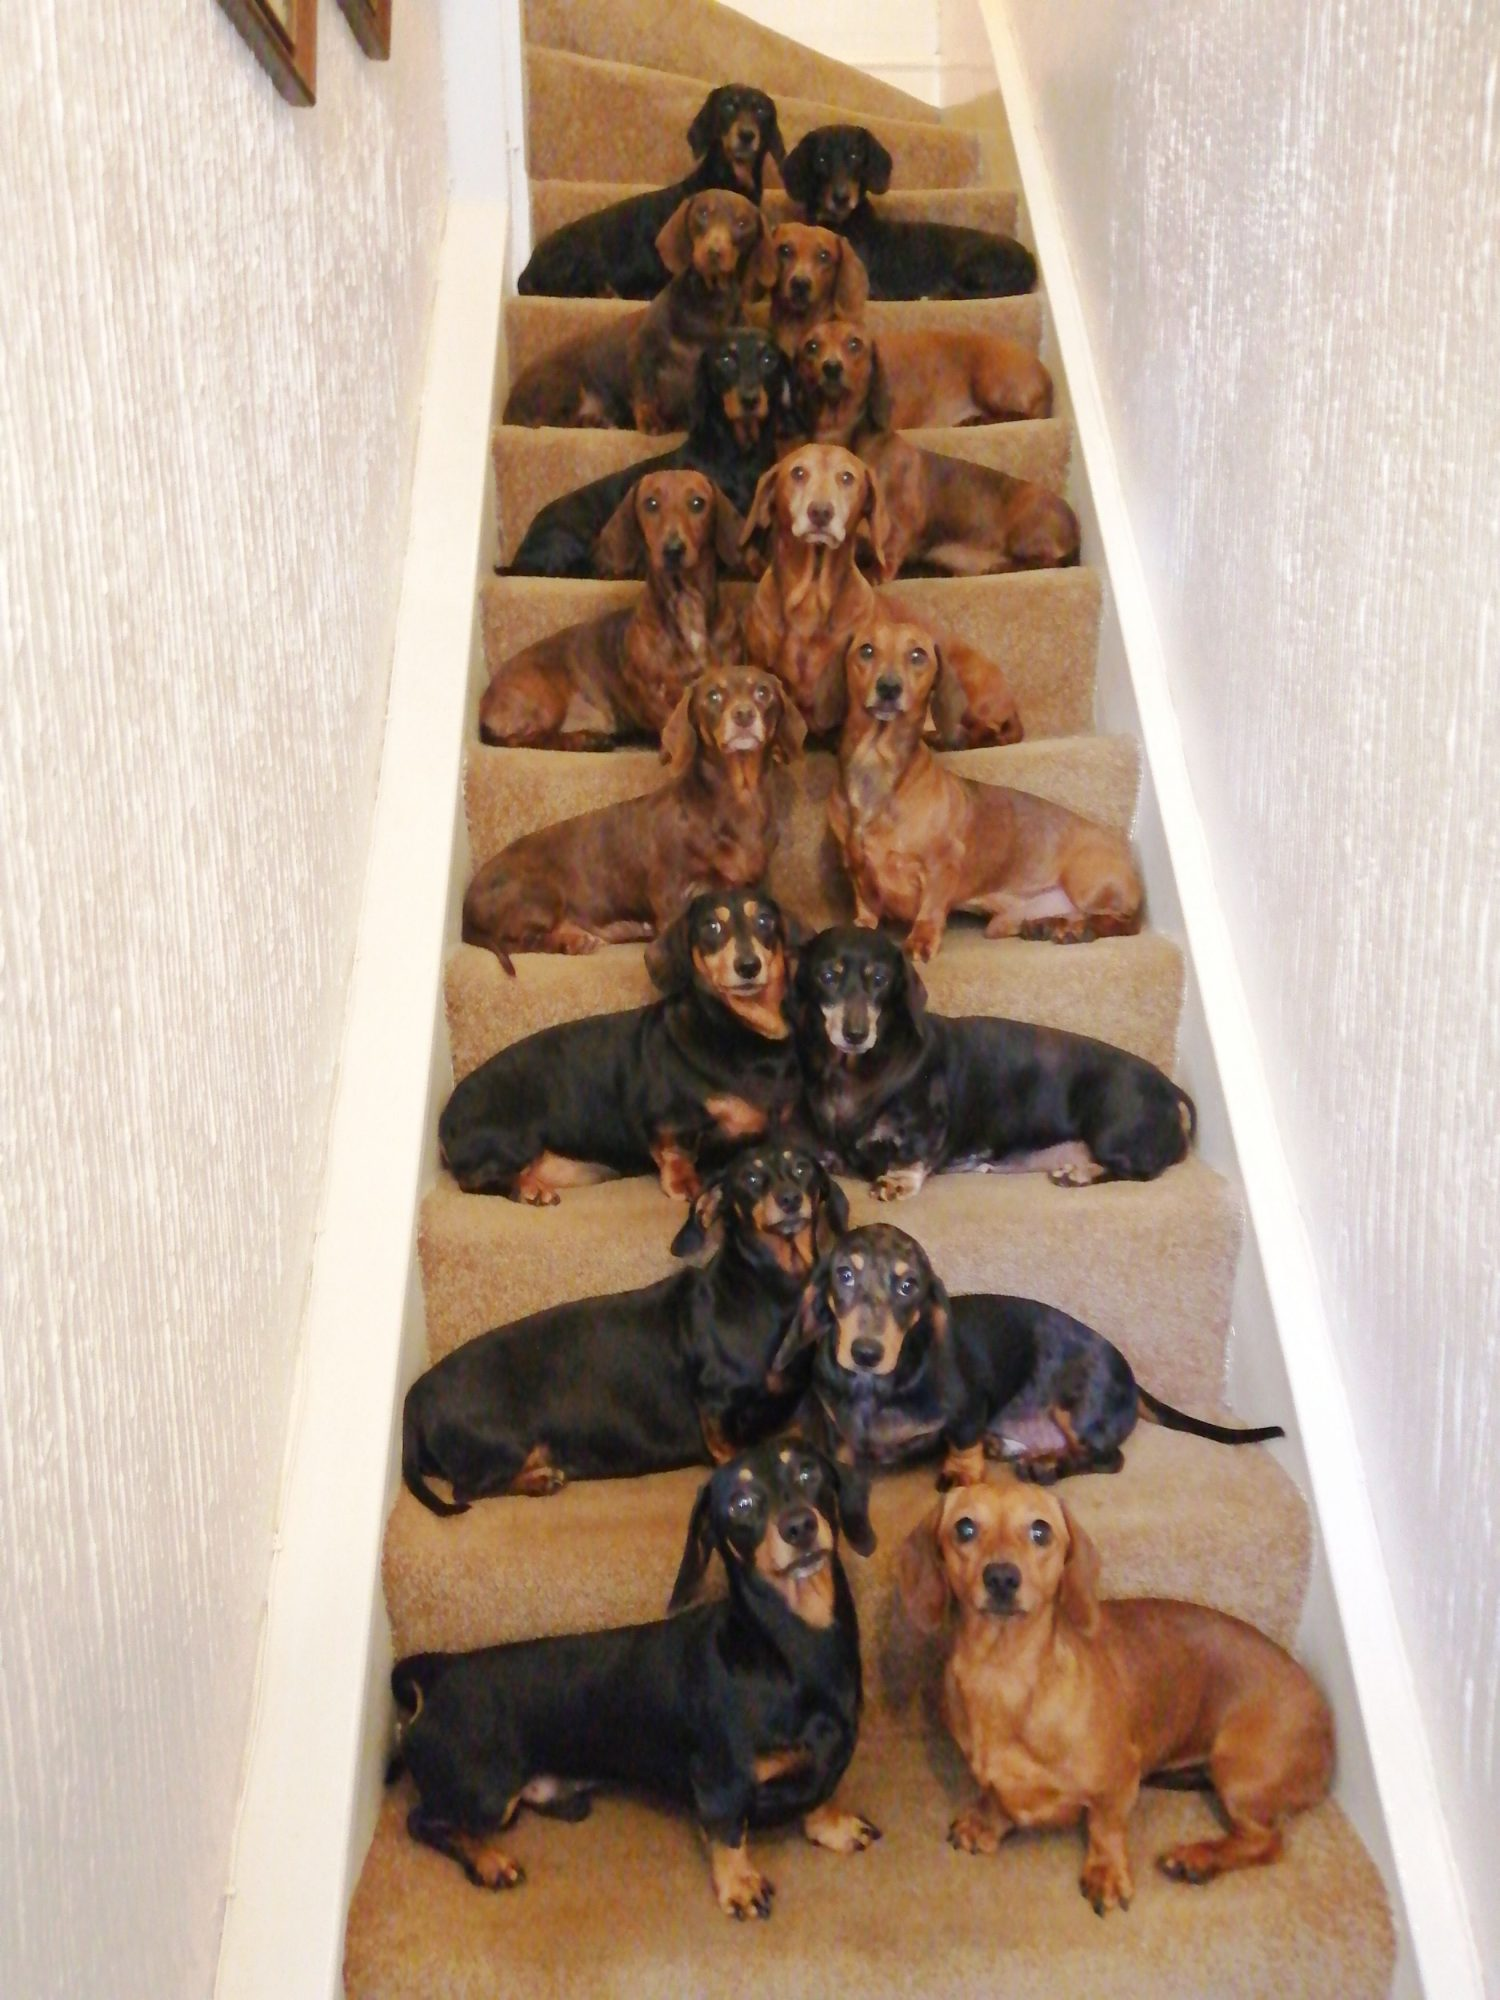 IAM BEACH, 19, MANAGED TO GET HIS 16 SAUSAGE DOGS LINED UP IN PAIRS ON THE STAIRS AND ALL LOOKING AT THE CAMERA FOR THIS AMAZING SNAP